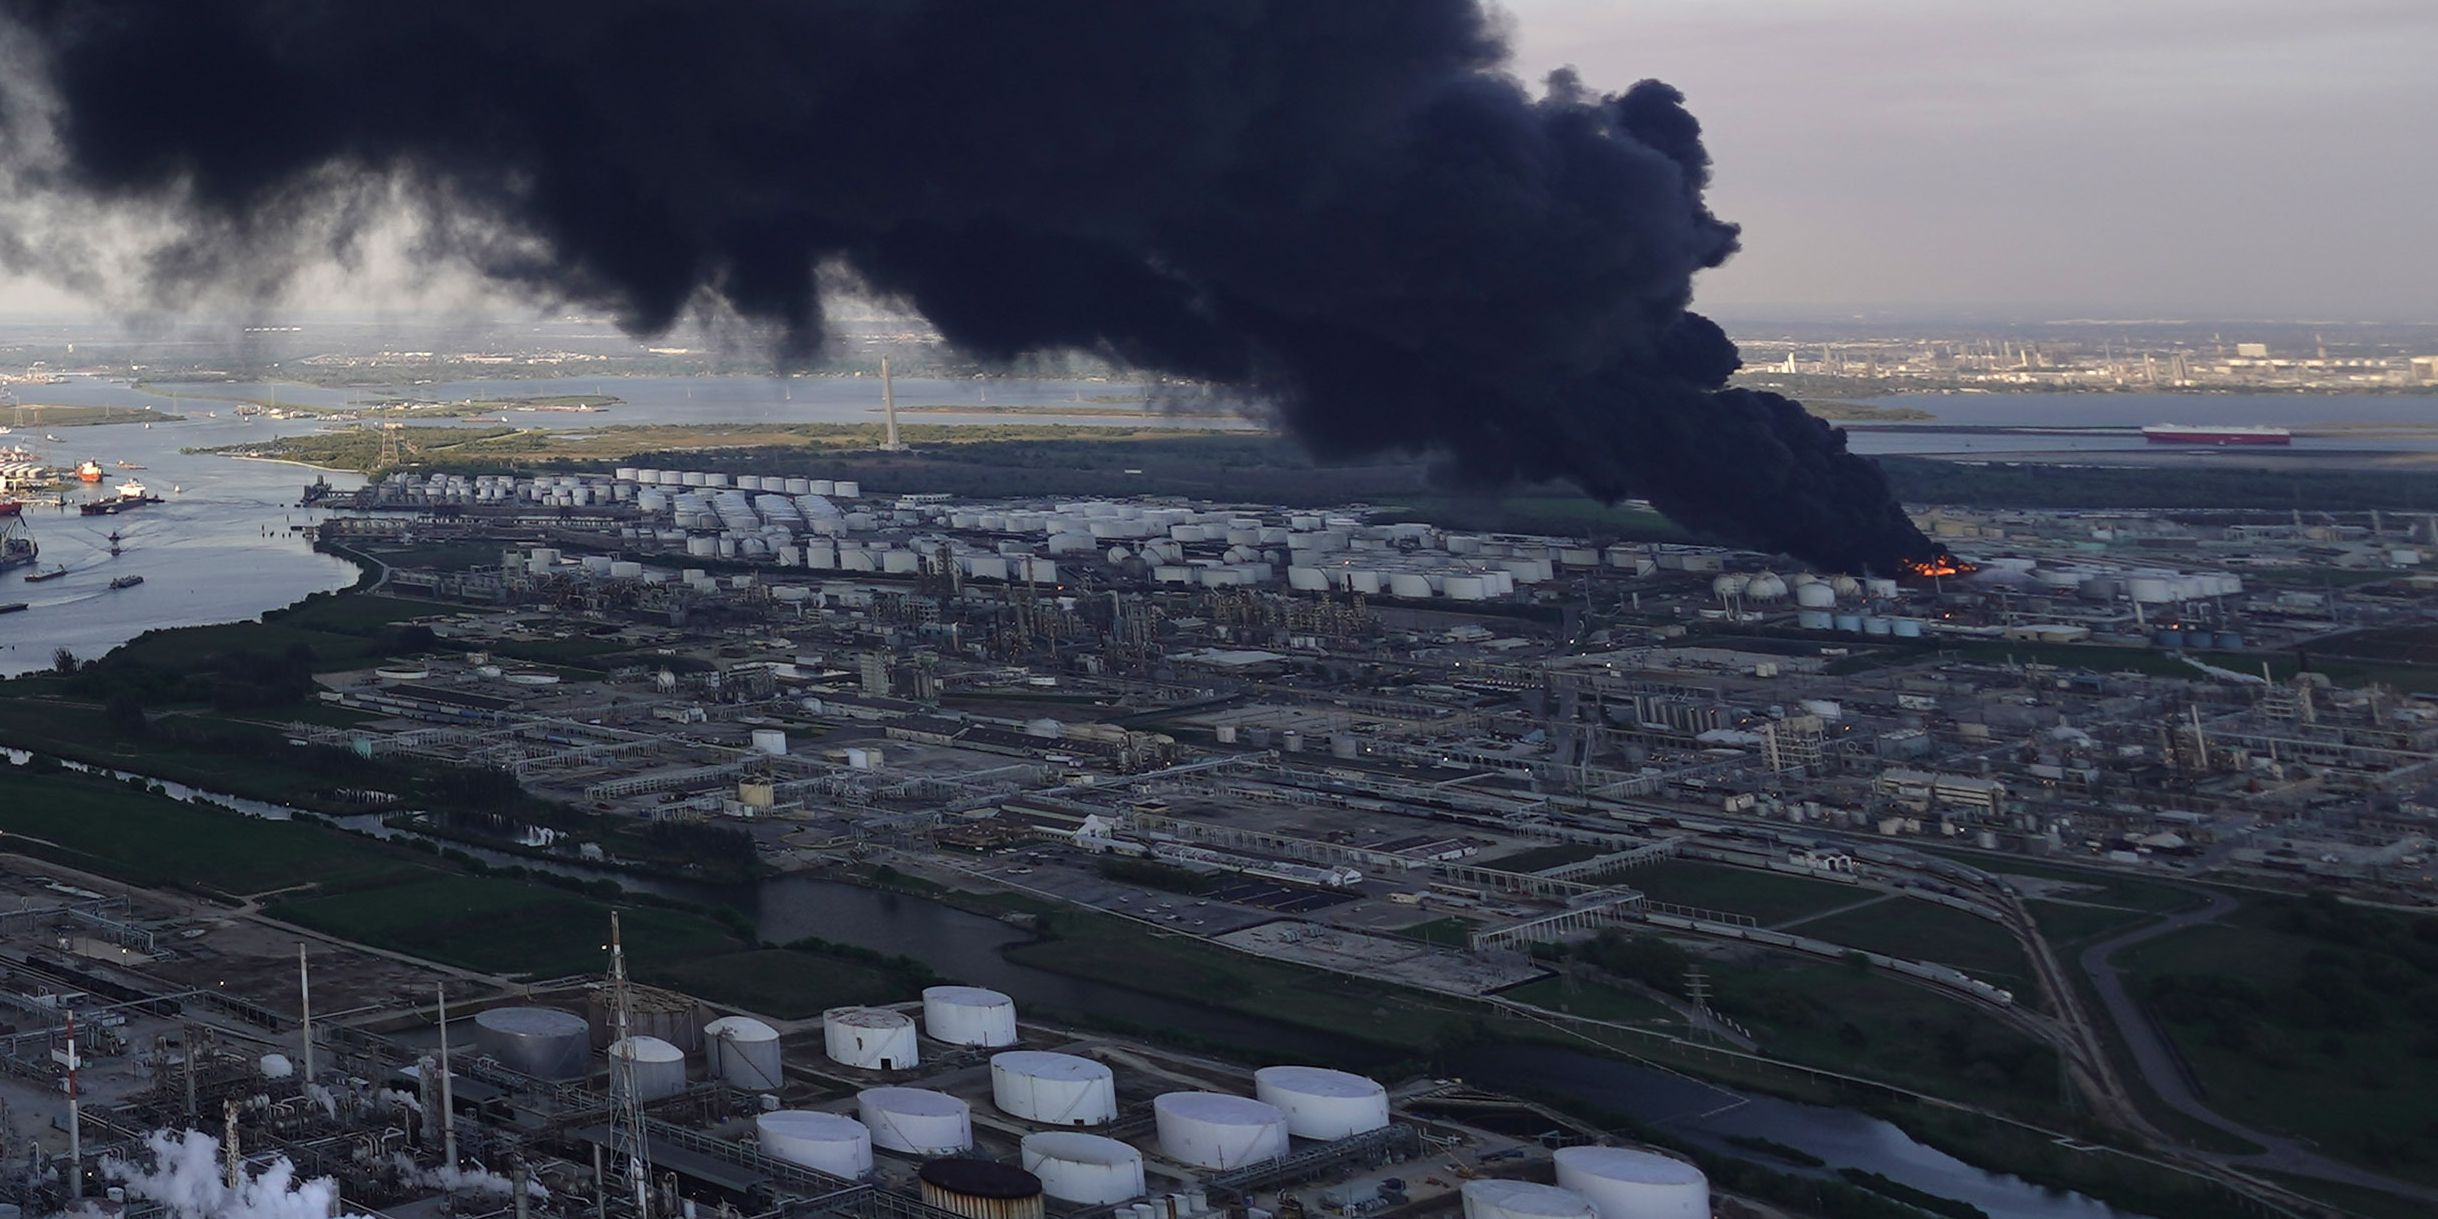 Officials: Air is safe near newly extinguished Houston-area petrochemical fire